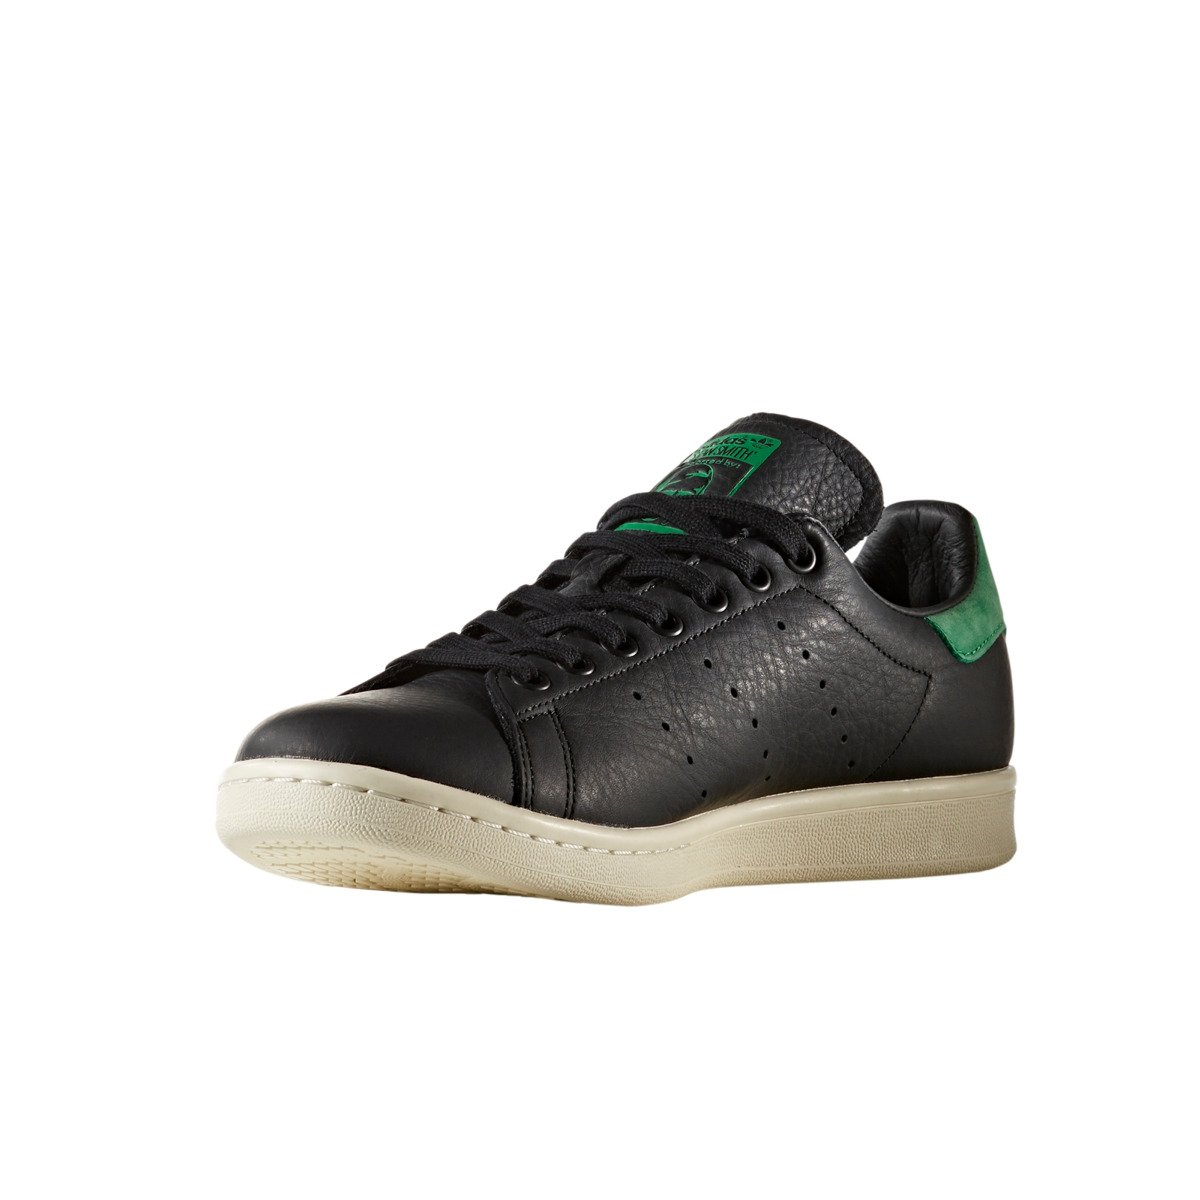 adidas originals stan smith core black shoes bz0458 basketball shoes casual shoes sklep. Black Bedroom Furniture Sets. Home Design Ideas